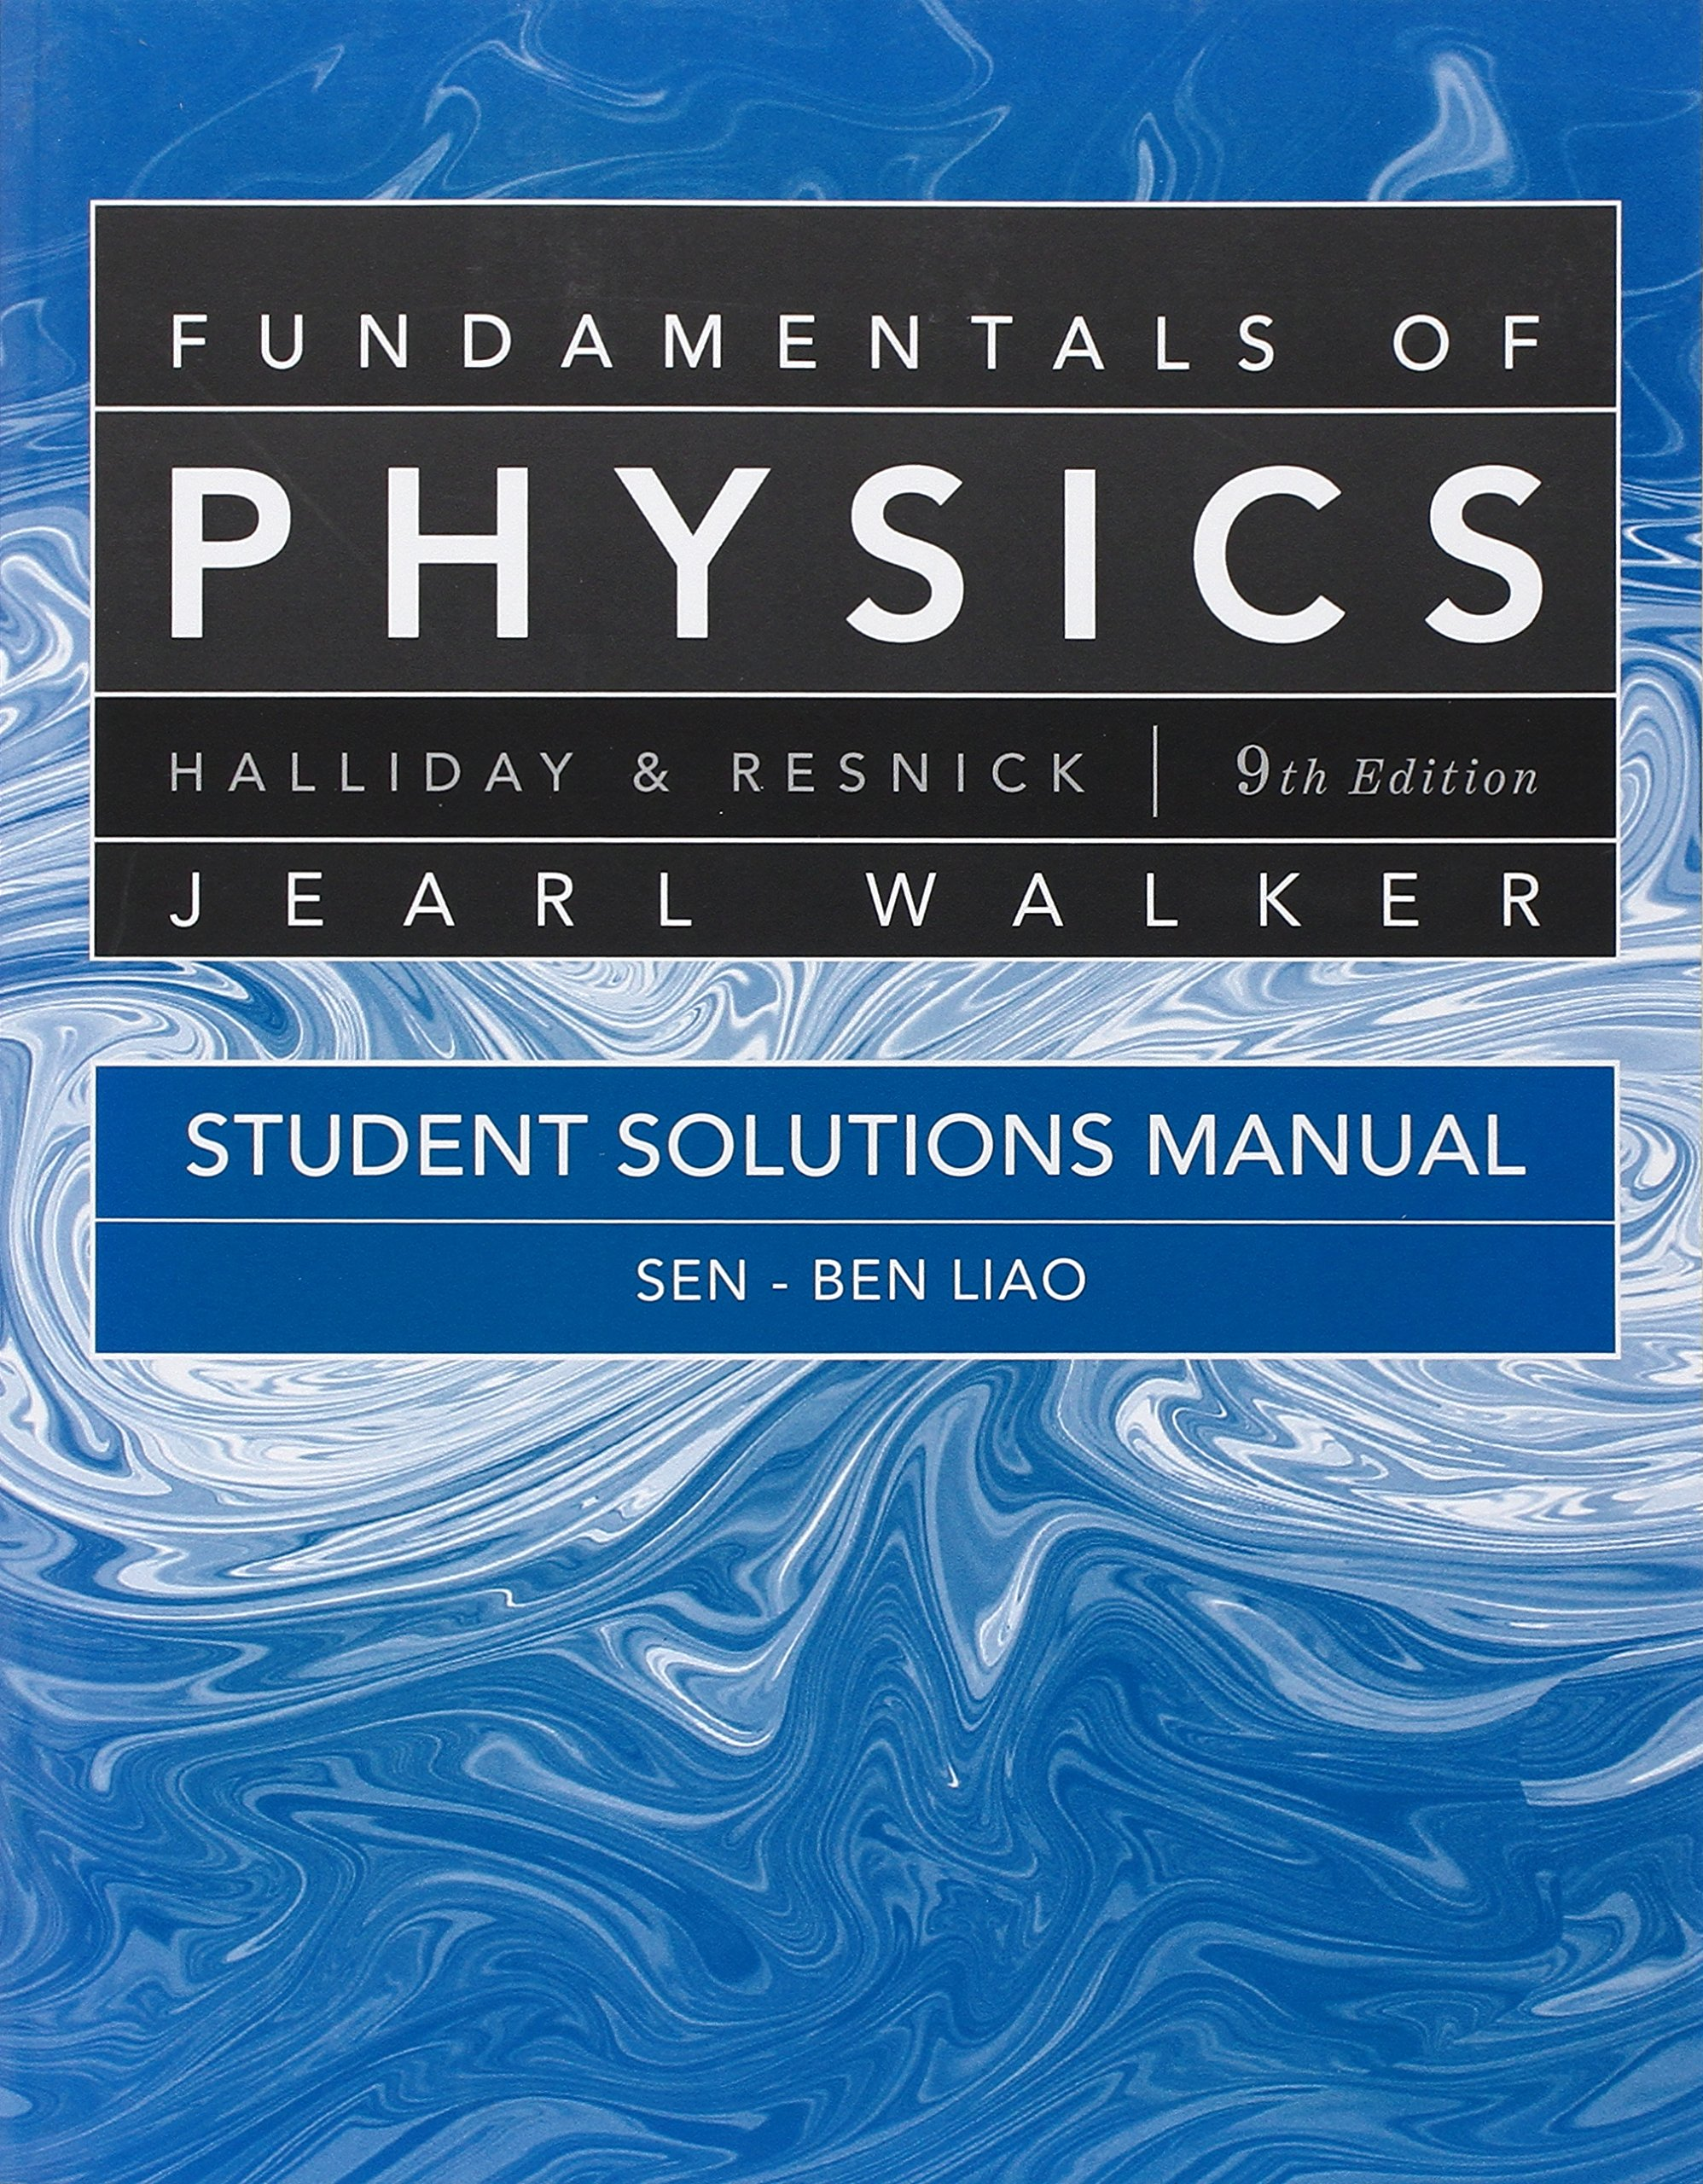 Student Solutions Manual for Fundamentals of Physics: David Halliday,  Robert Resnick, Jearl Walker, J. Richard Christman: 9780470551813: Books -  Amazon.ca